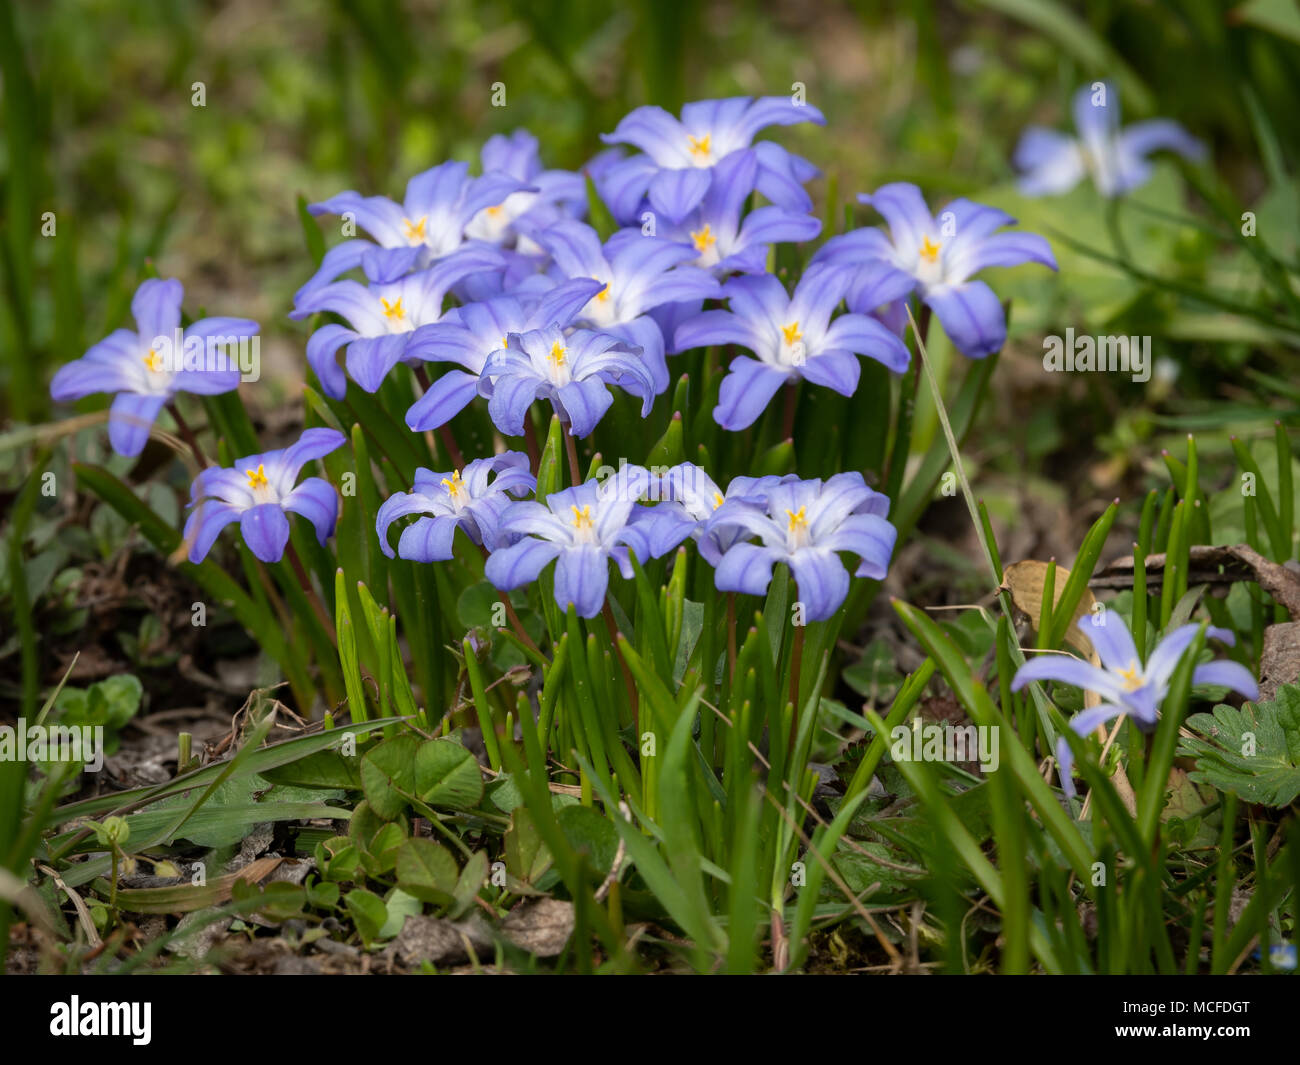 Some Glory Of The Snow Flowers Chionodoxa Luciliae In Spring Stock